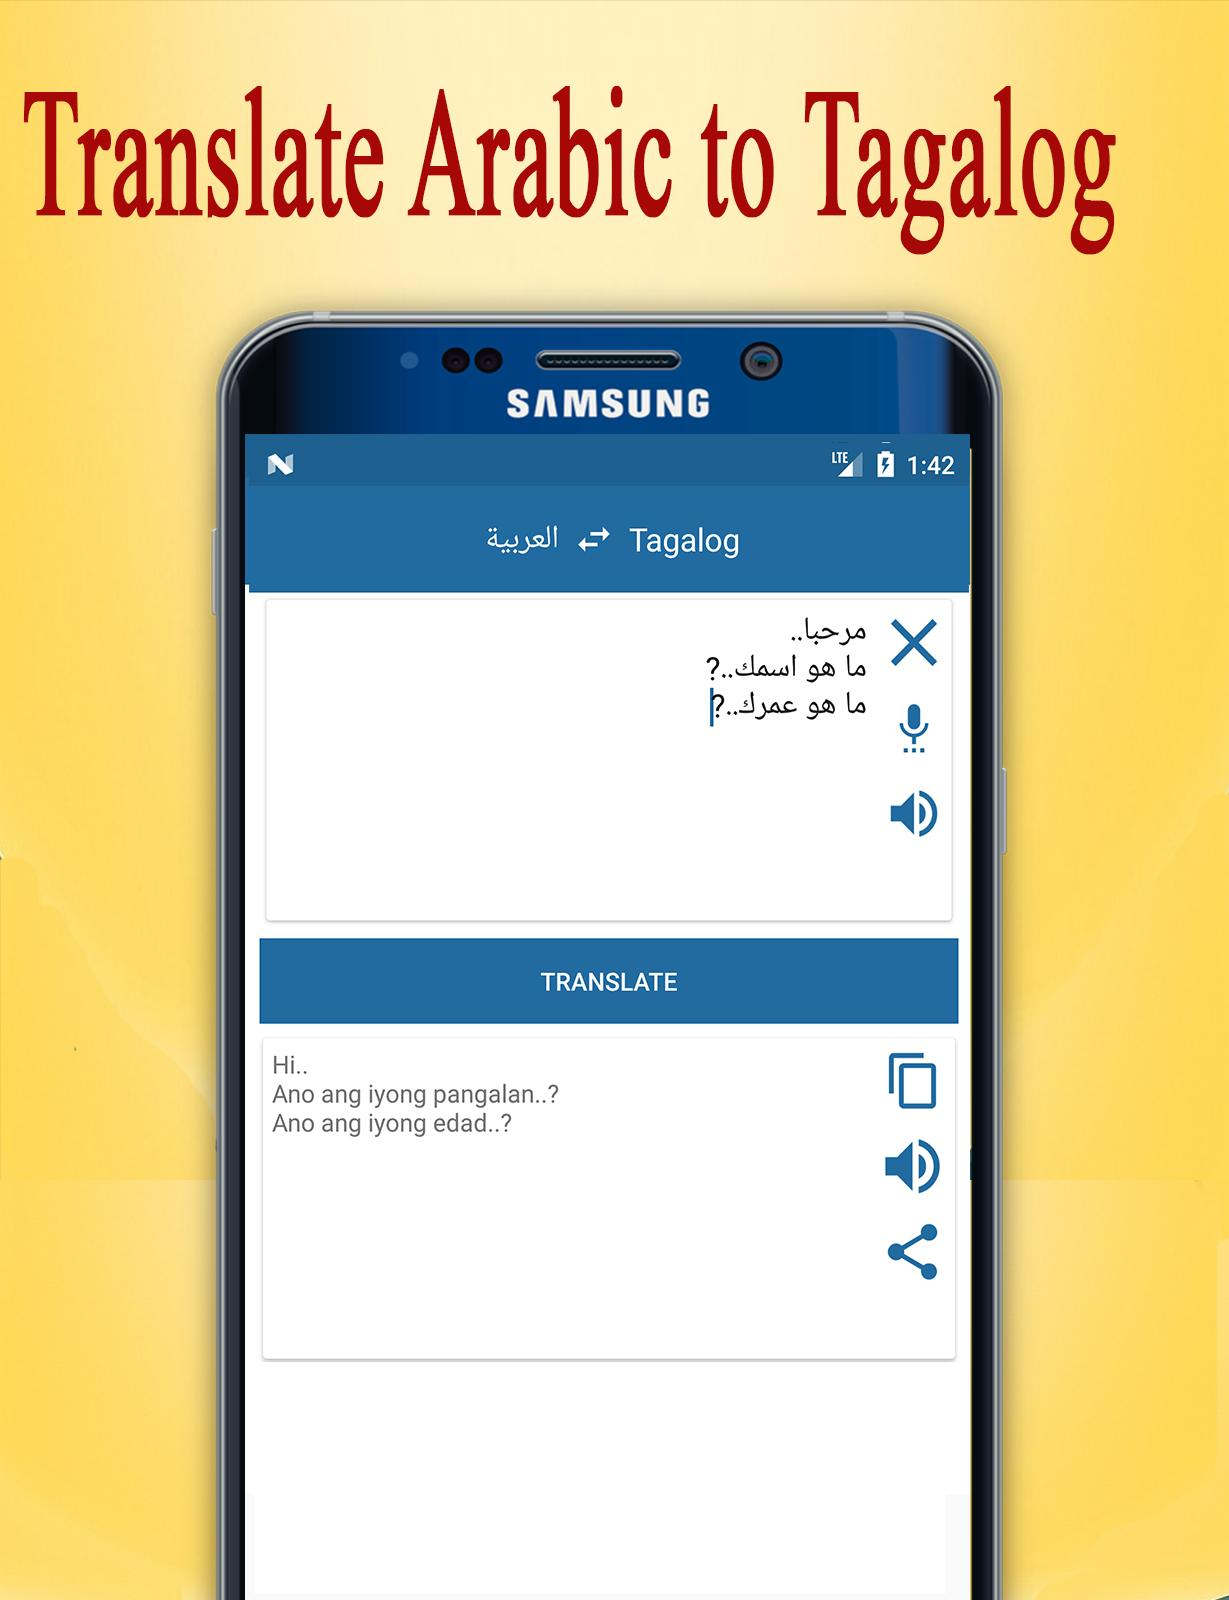 Tagalog to Arabic Translator for Android - APK Download